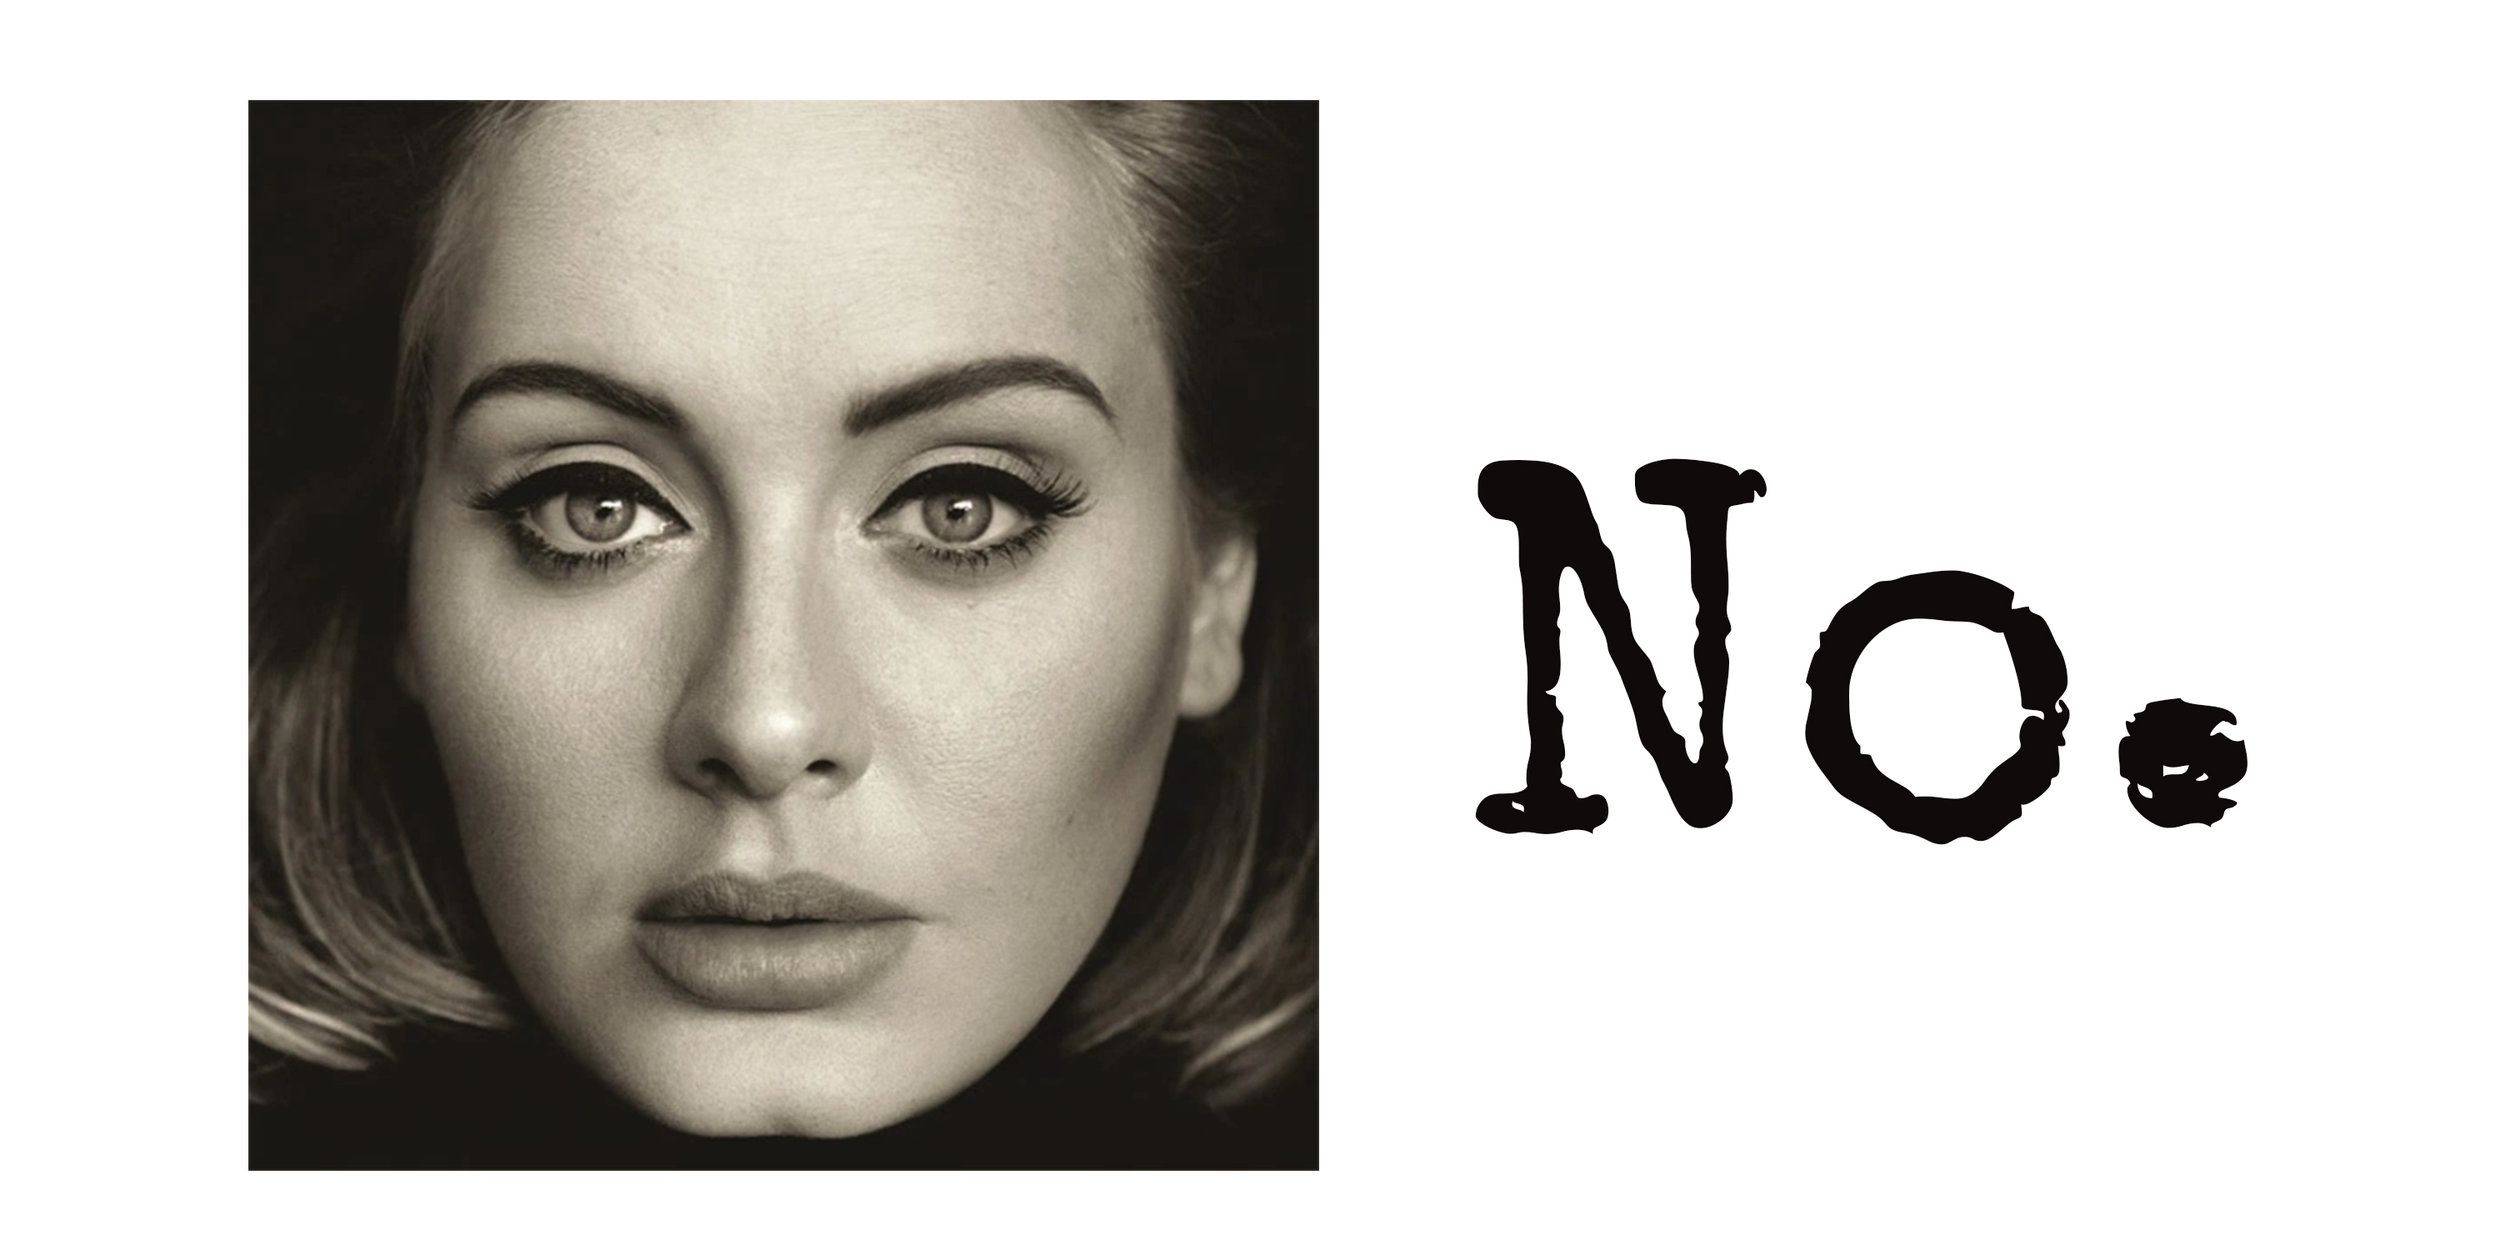 Have I listened to Adele's 25 yet?